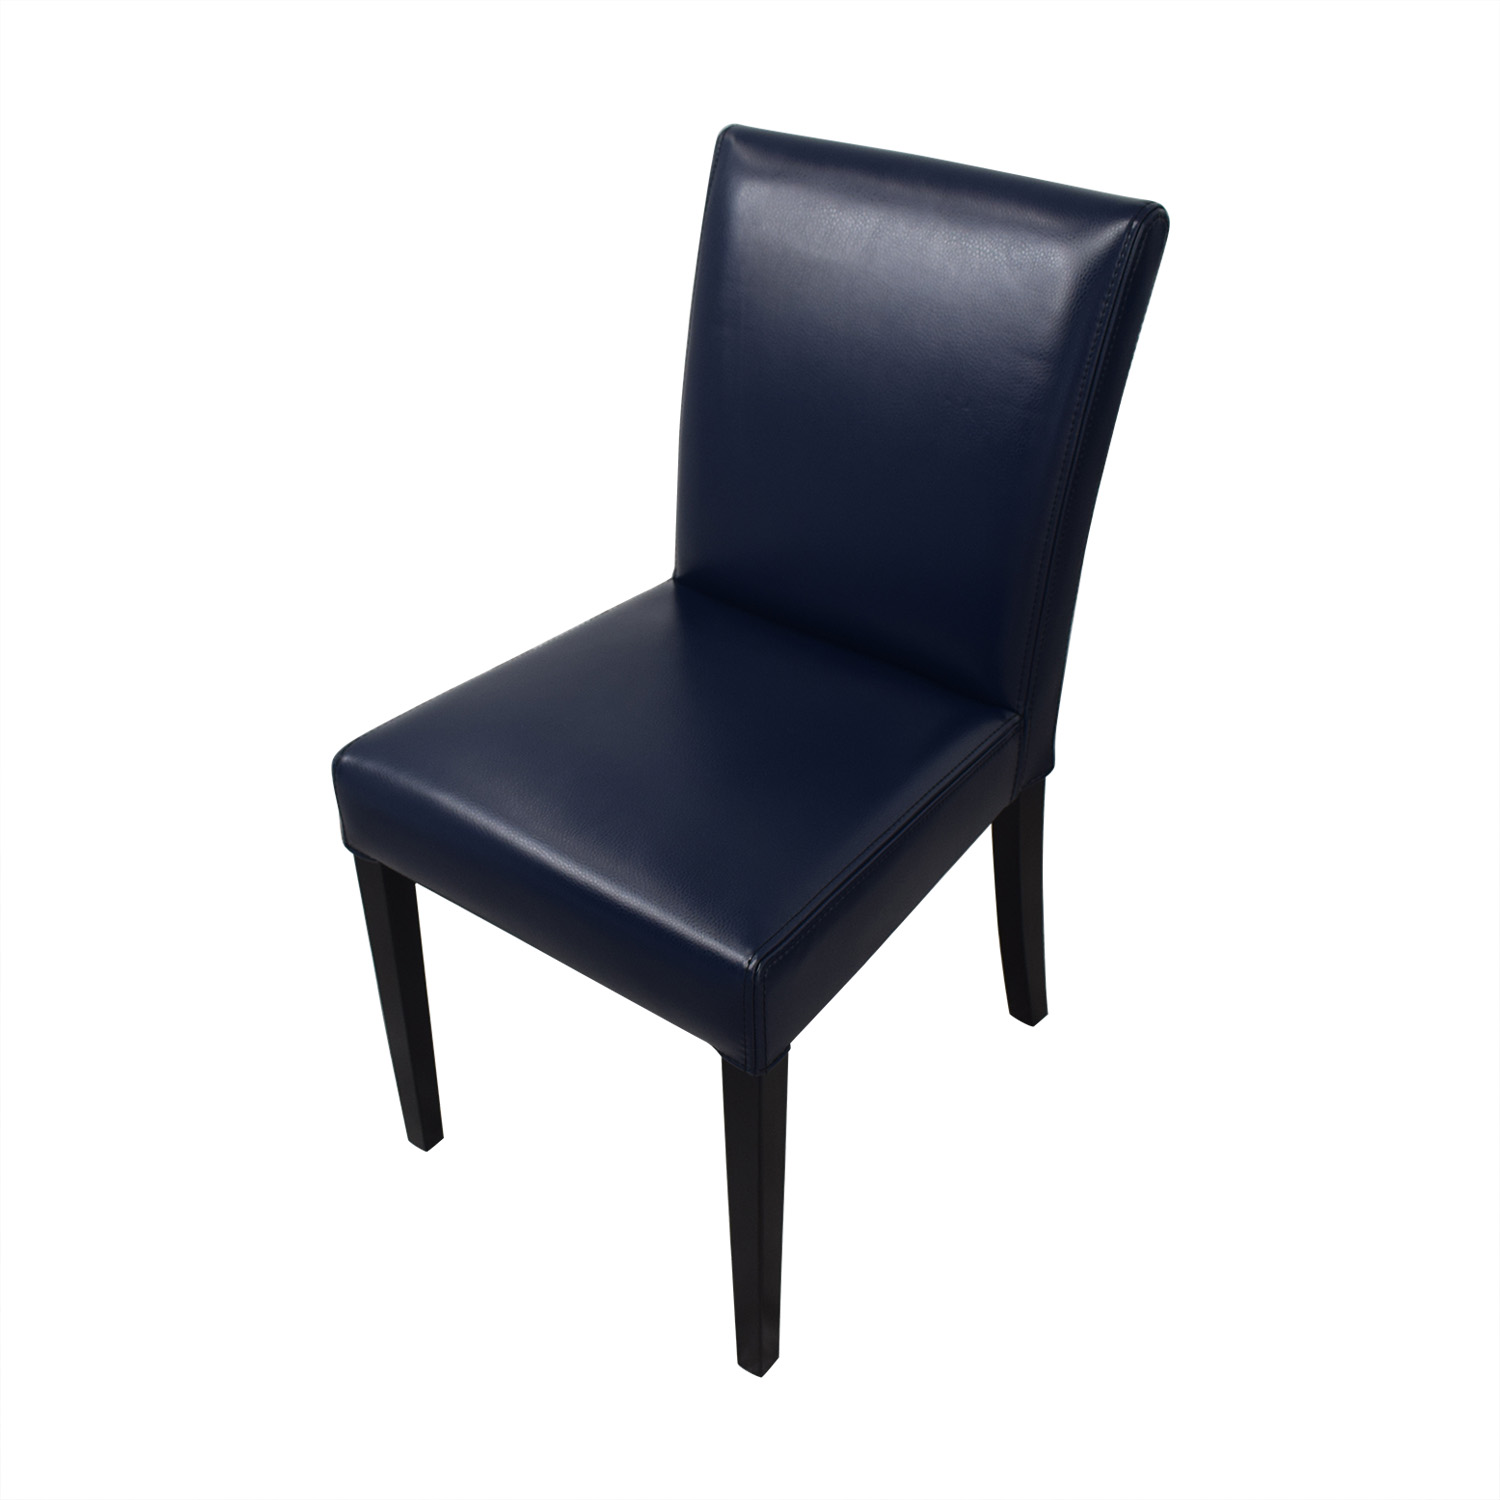 buy Crate & Barrel Lowe Dining Chairs Crate & Barrel Dining Chairs